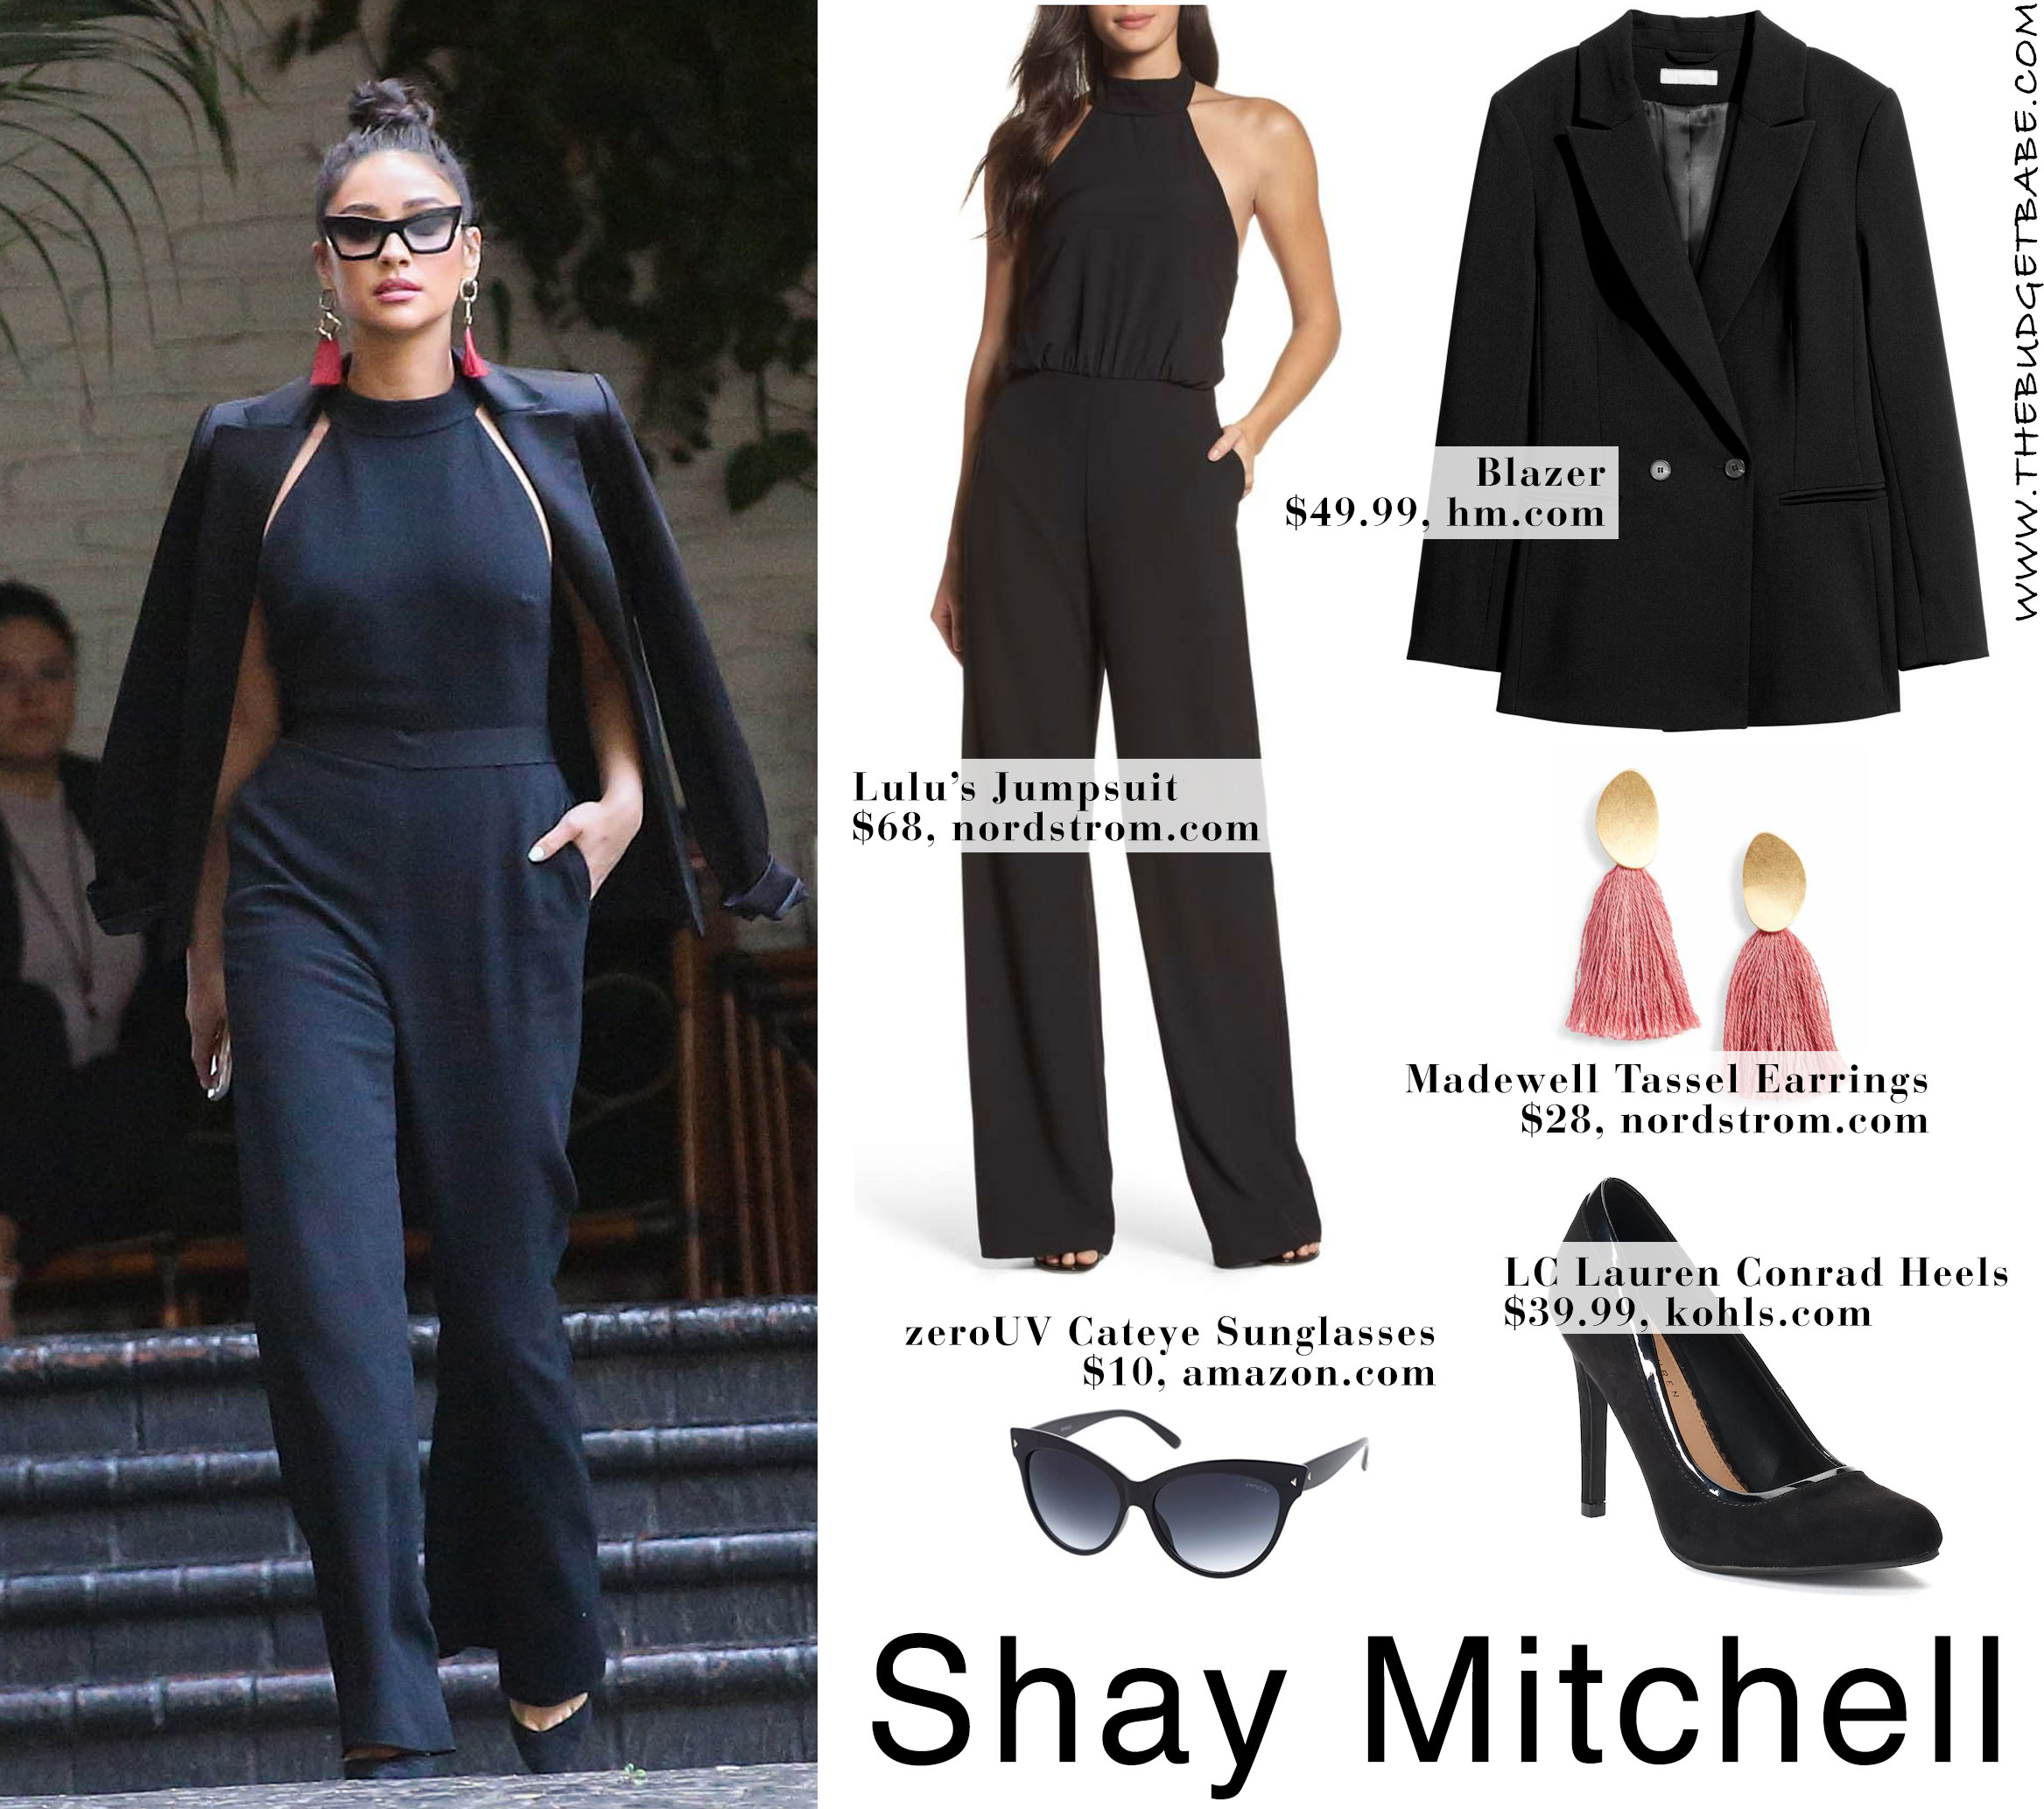 6d76df4e0a2 Shay Mitchell s Black Jumpsuit and Fringe Earrings Look for Less